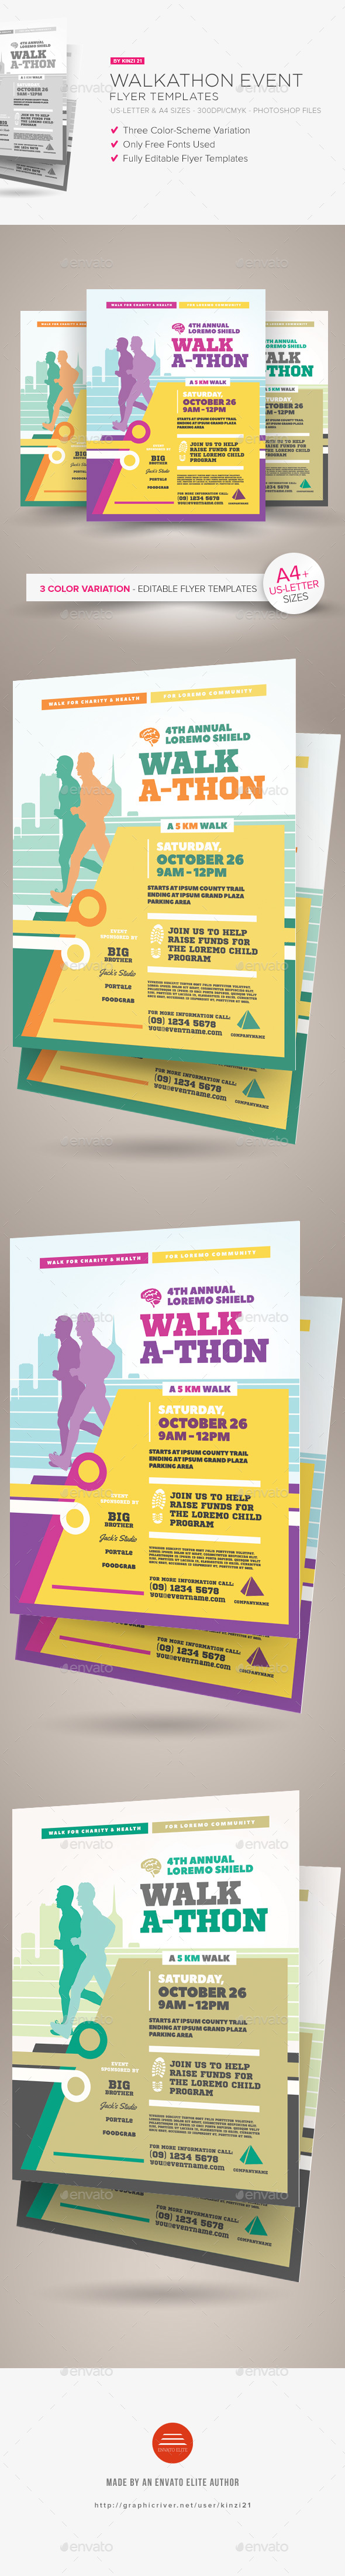 Walkathon Event Flyer Templates - Sports Events